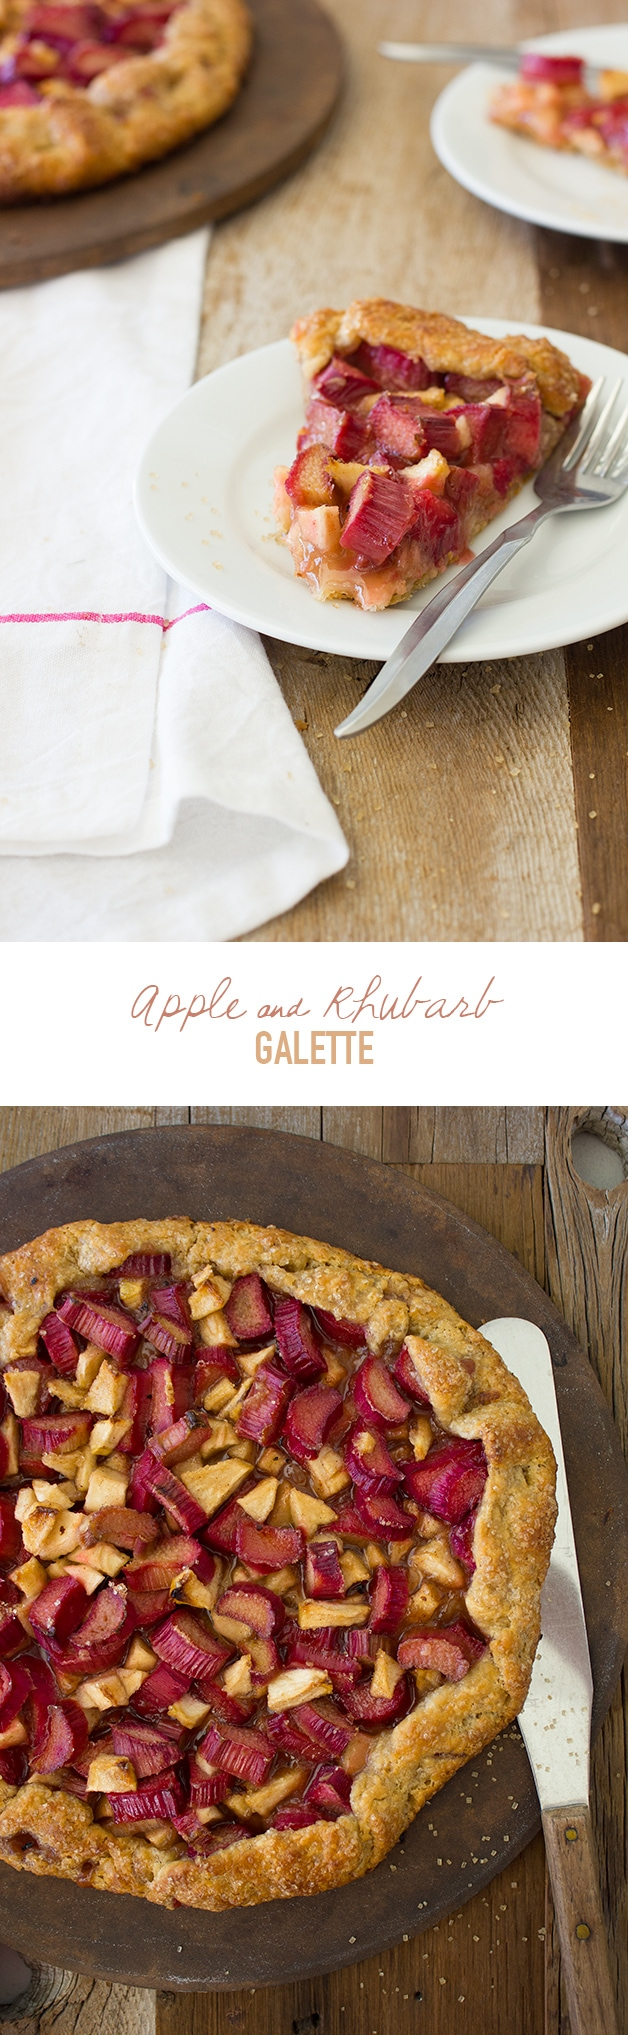 Apple & Rhubarb Galette - A flaky free-form pie piled high with juicy fruit and topped with a hefty sprinkle of raw sugar. | www.brighteyedbaker.com #OXOGreenSaver @OXO @MelissasProduce